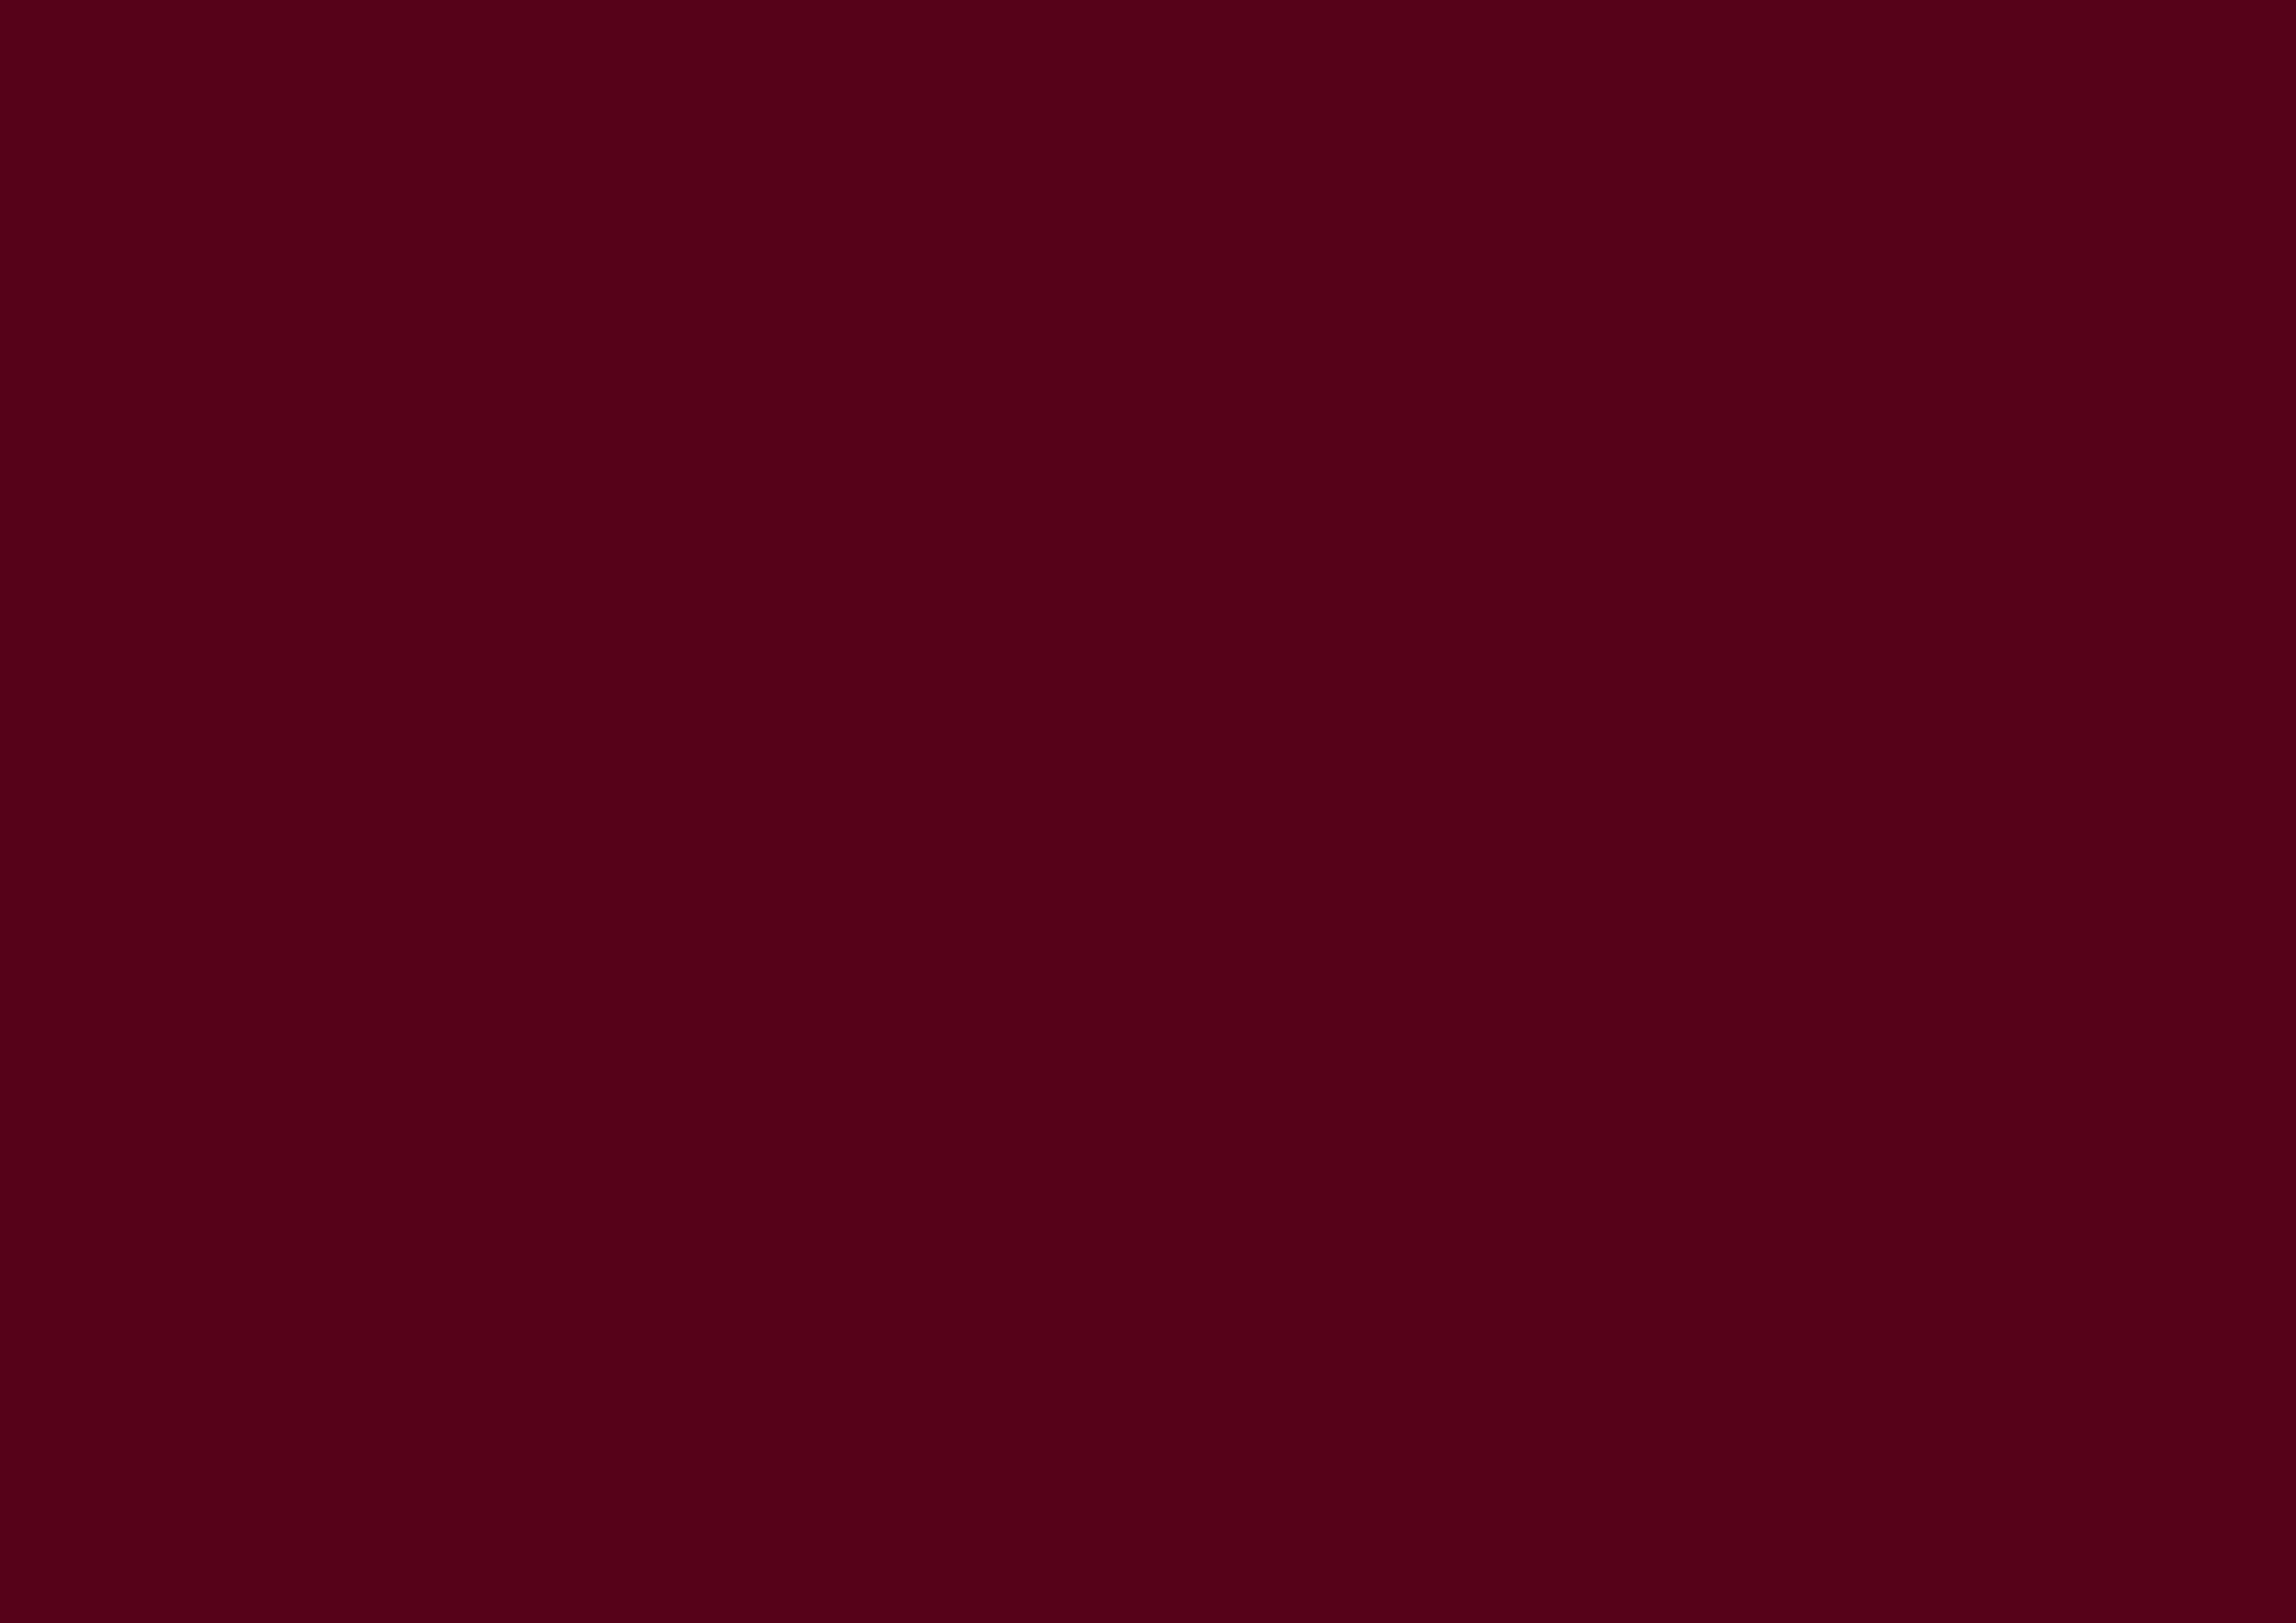 3508x2480 Dark Scarlet Solid Color Background